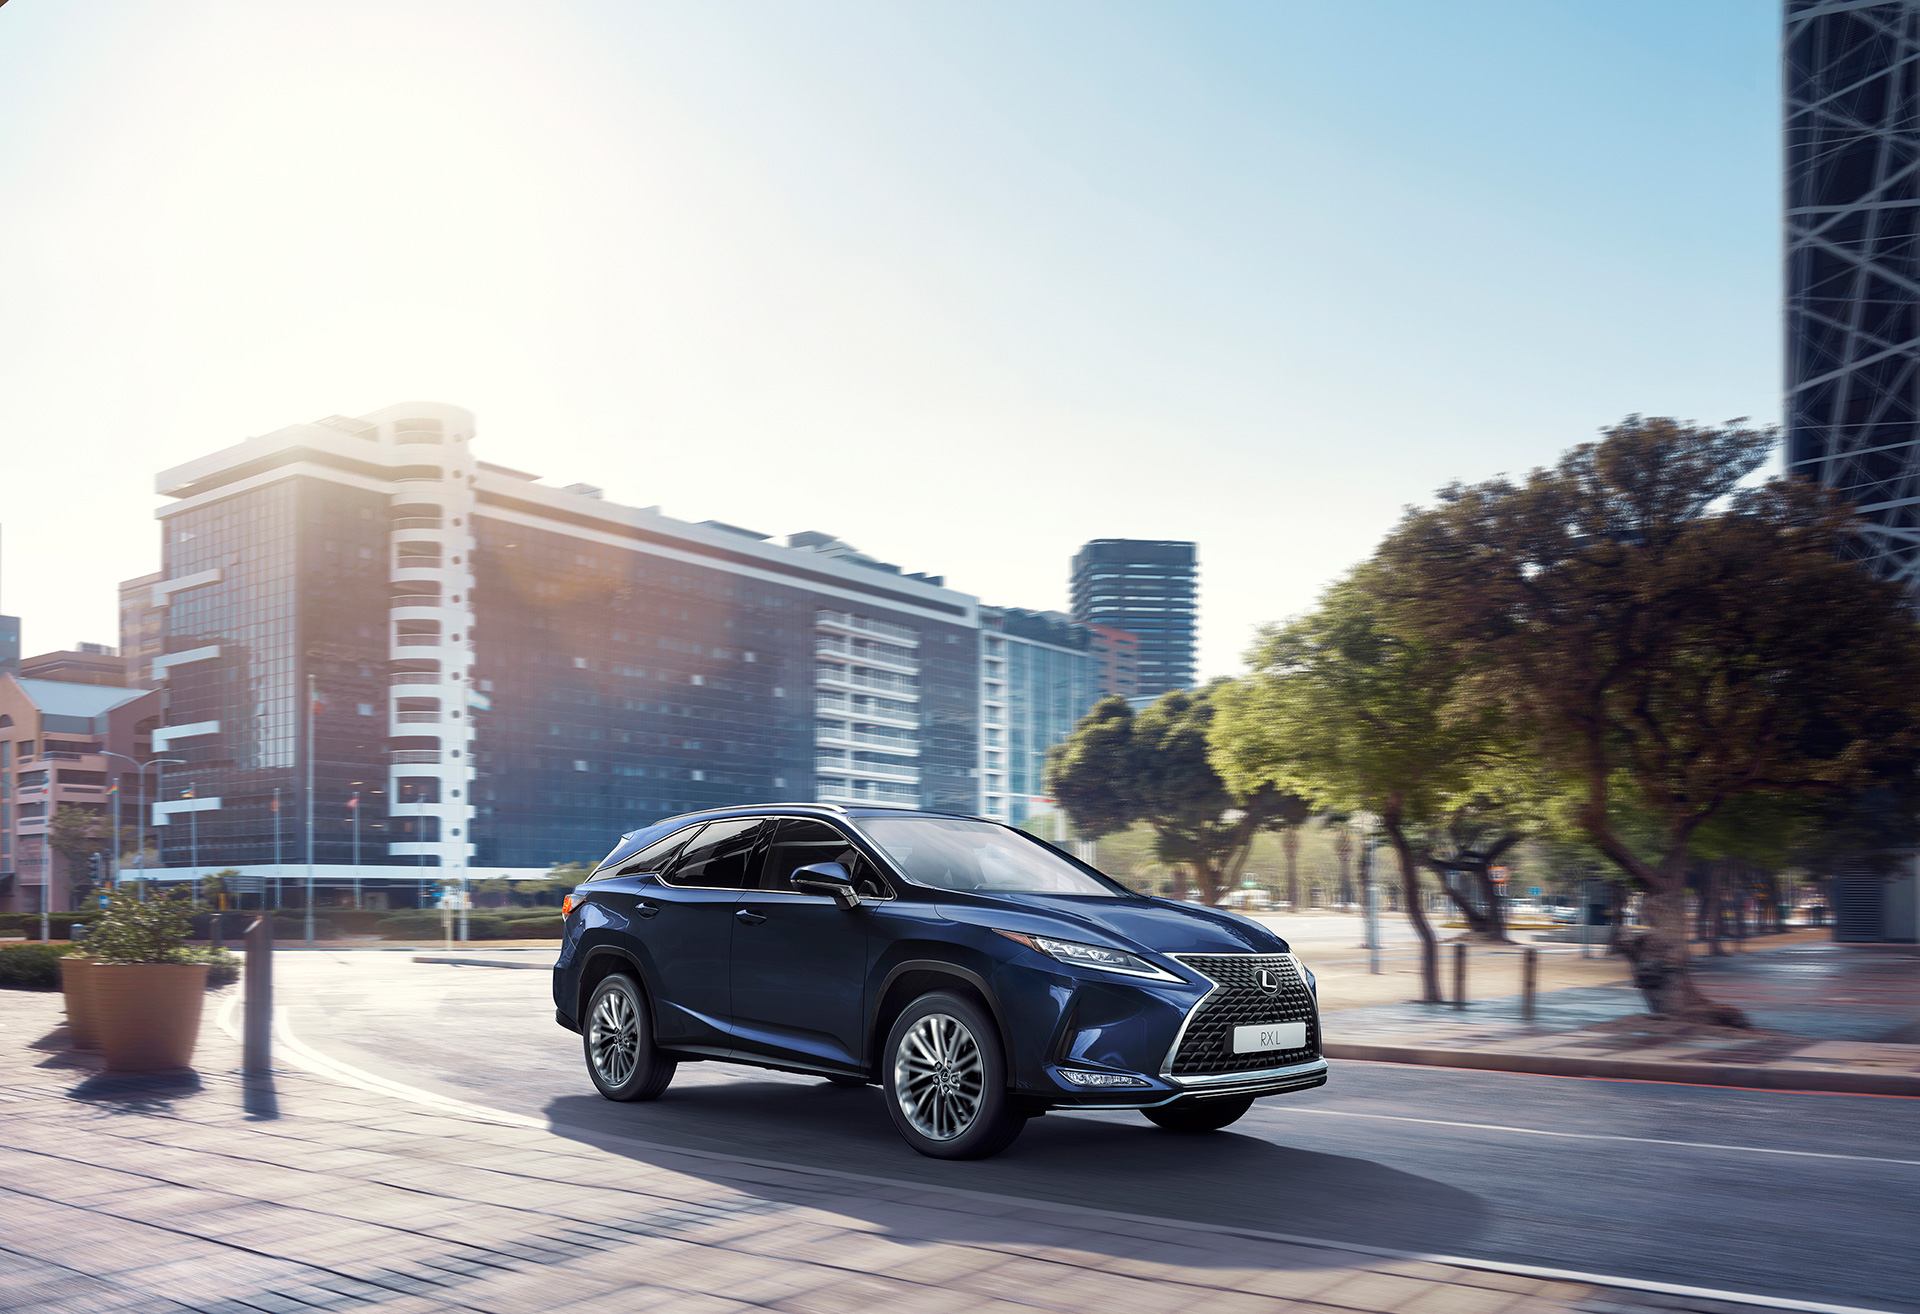 New Lexus RX Makes World DebutThe Pioneer of the Luxury SUV Segment Evolves to New Heights Equipped with the Latest Technology - Image 4